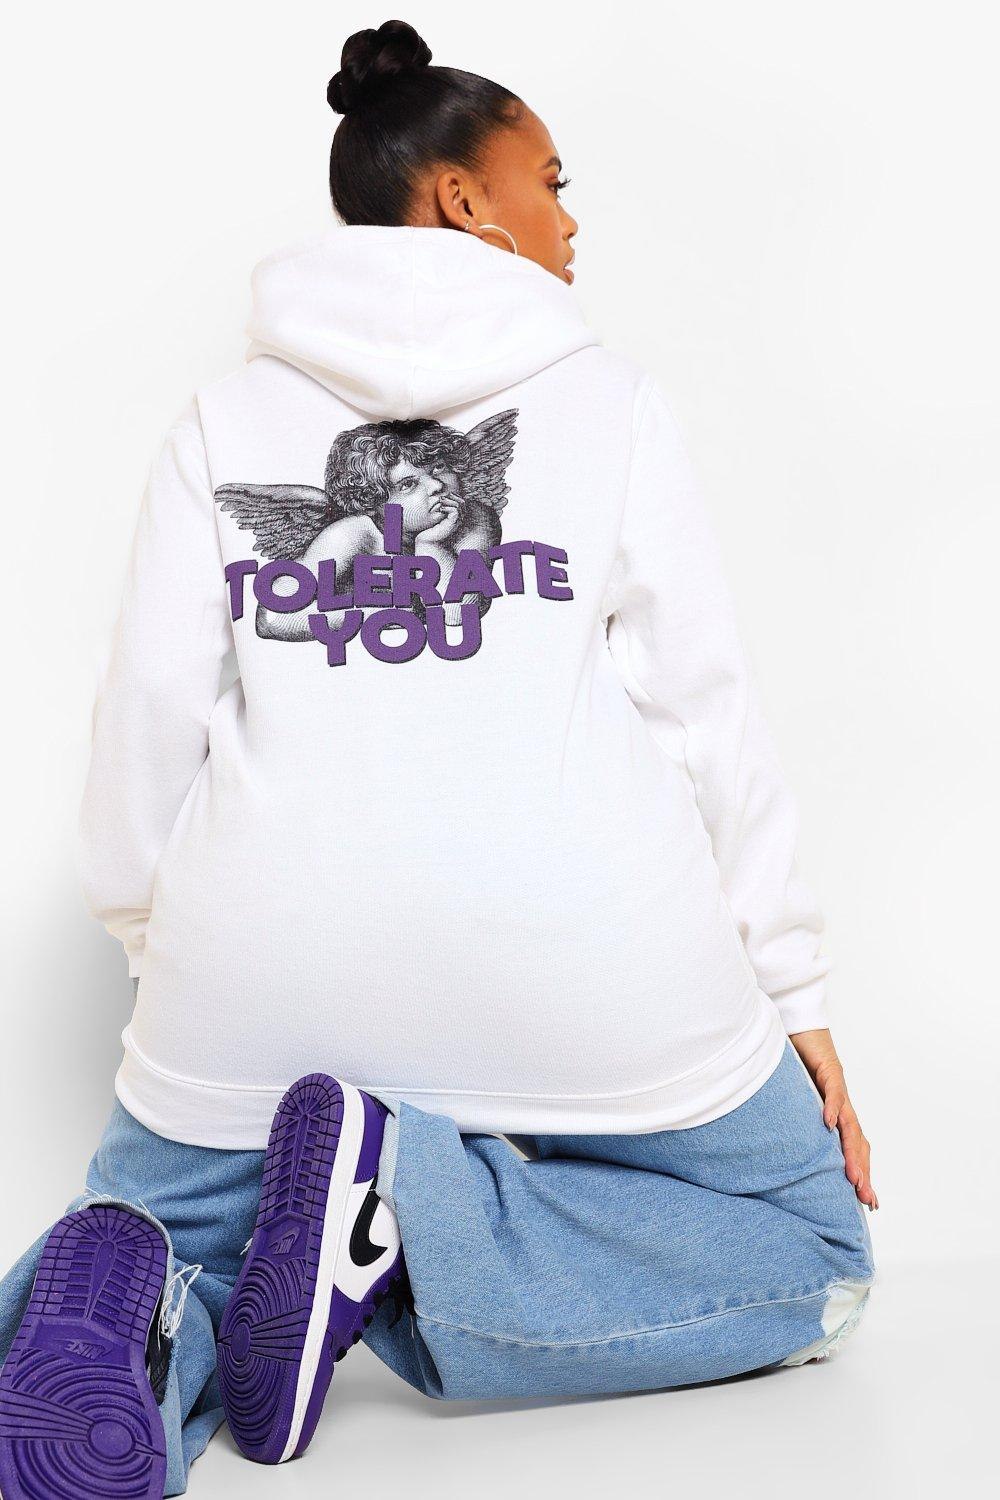 Plus I Tolerate You Slogan Back Print Hoody 15